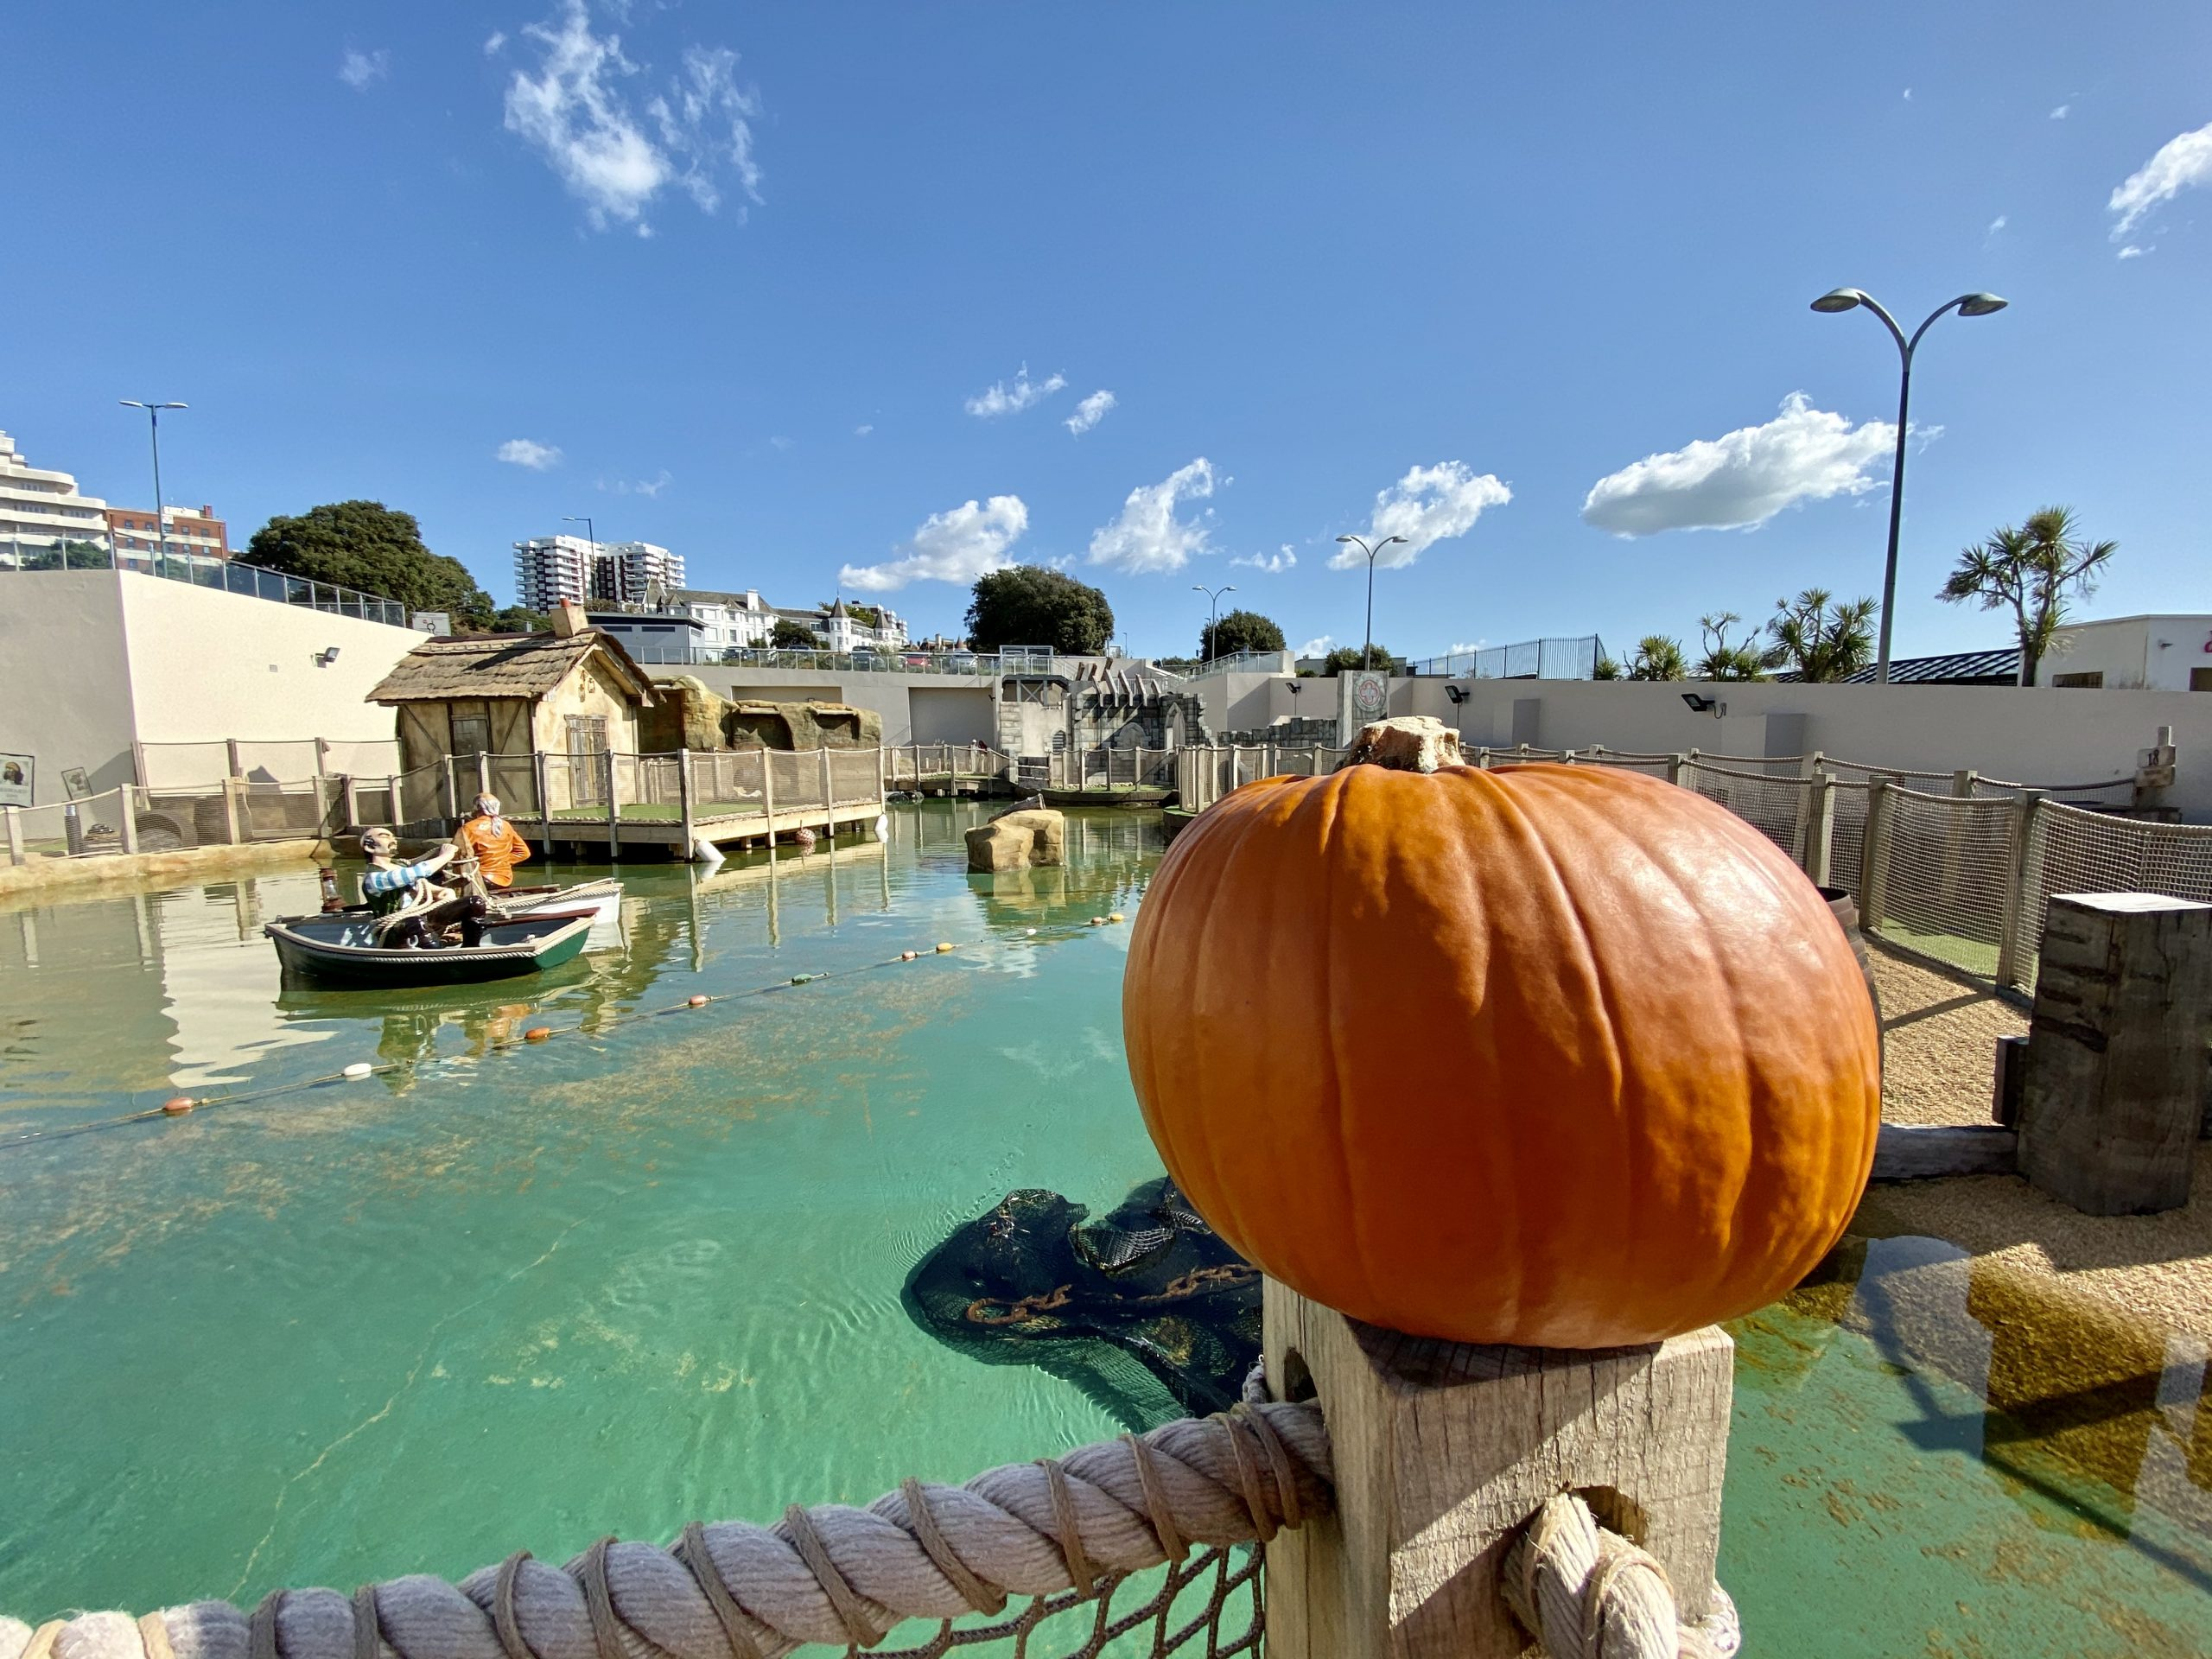 Halloween pumpkin with adventure golf course lake in the backdrop